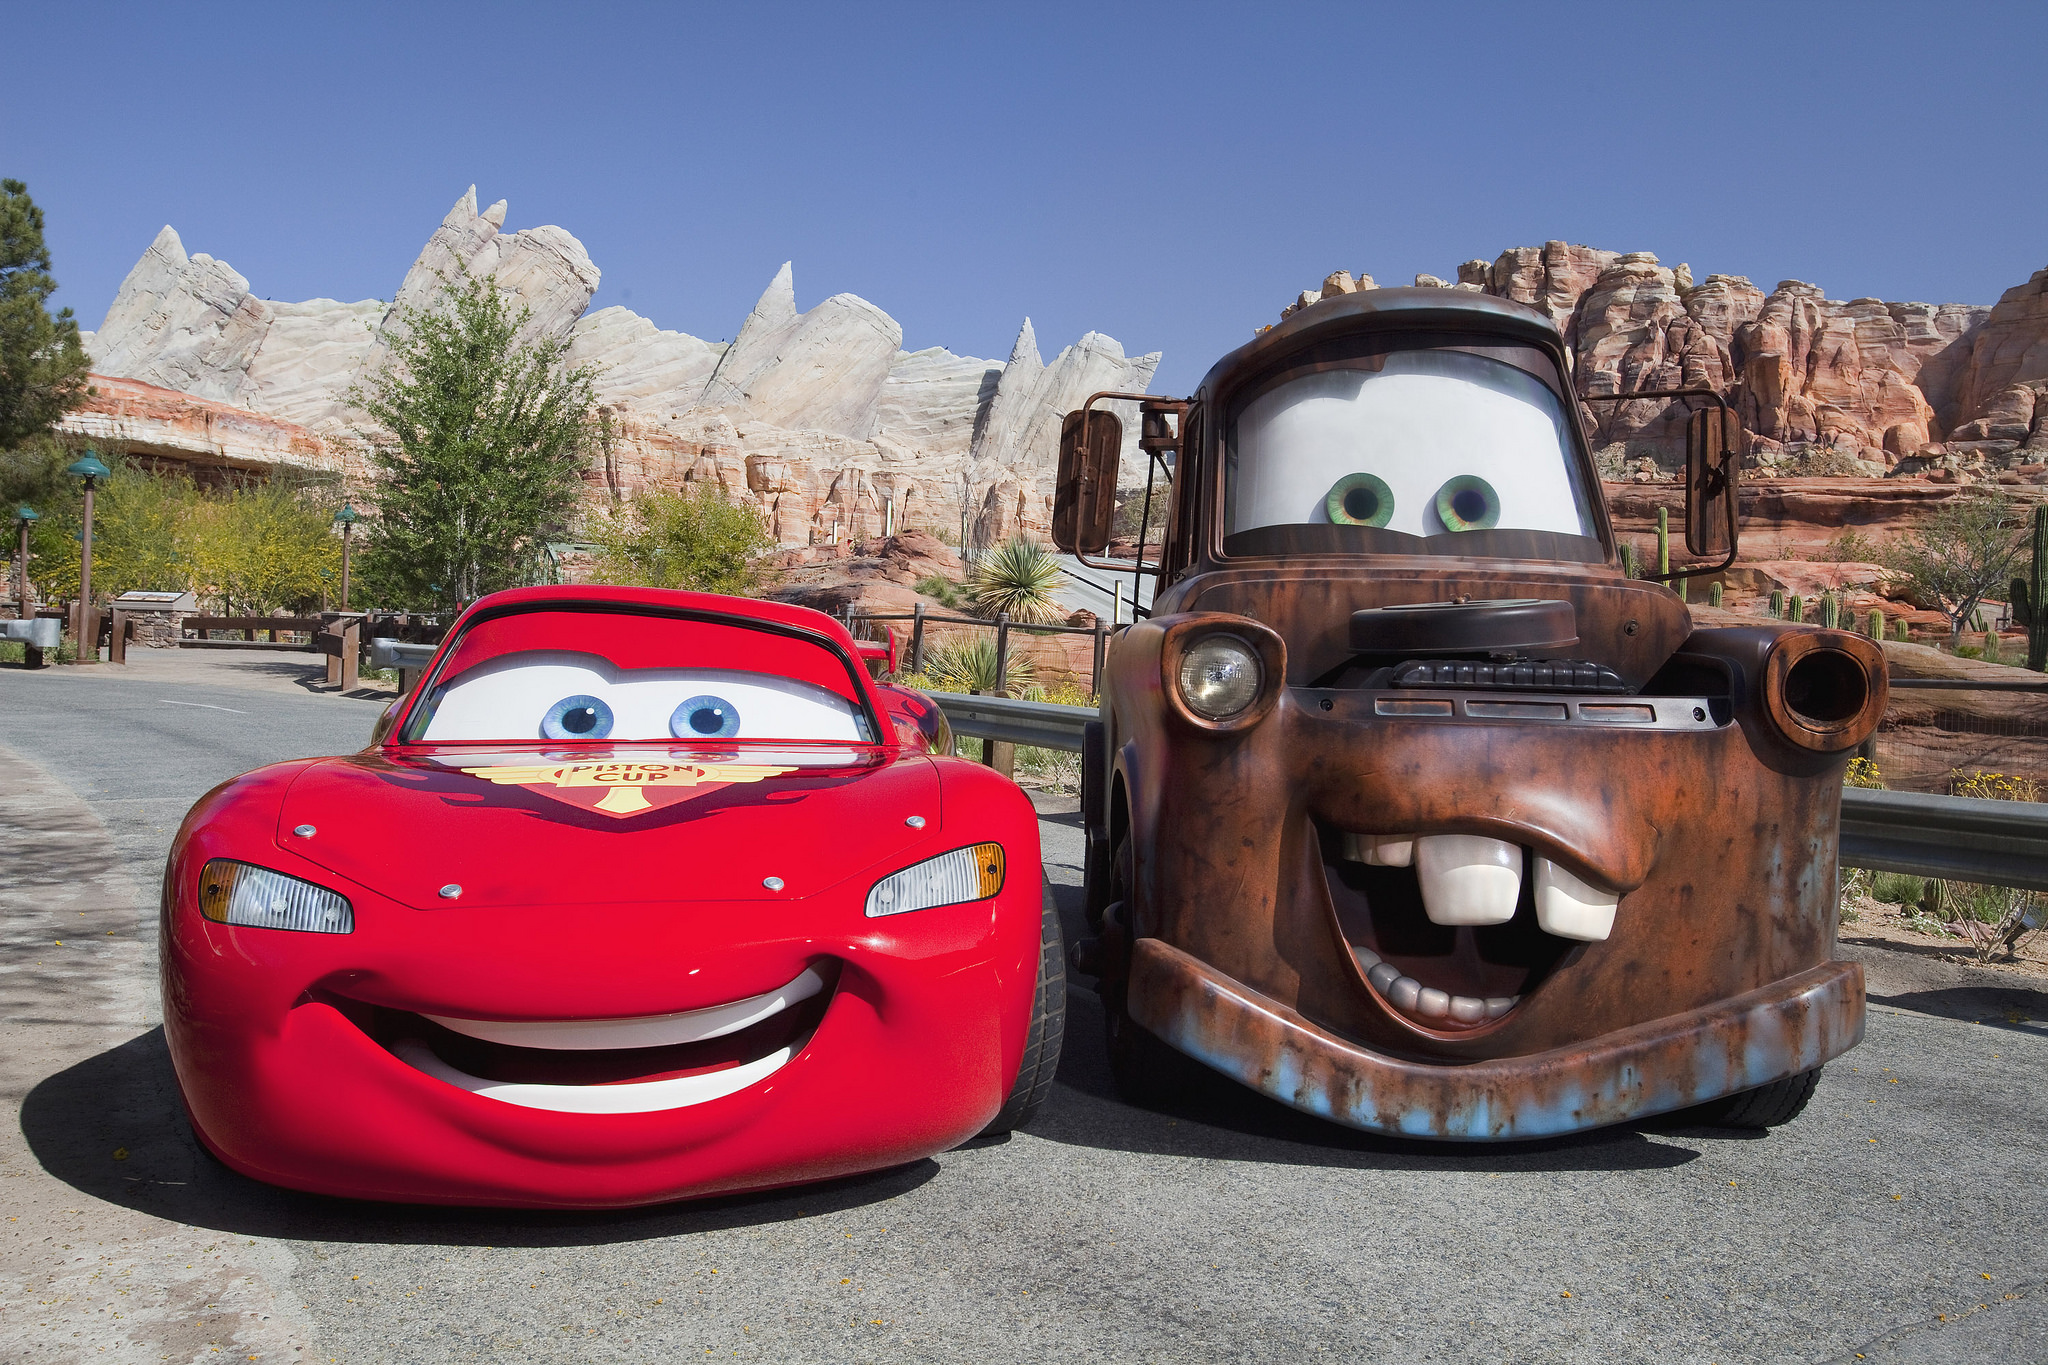 Some of the Most Anticipated Sequels are Coming Soon, like Cars 3